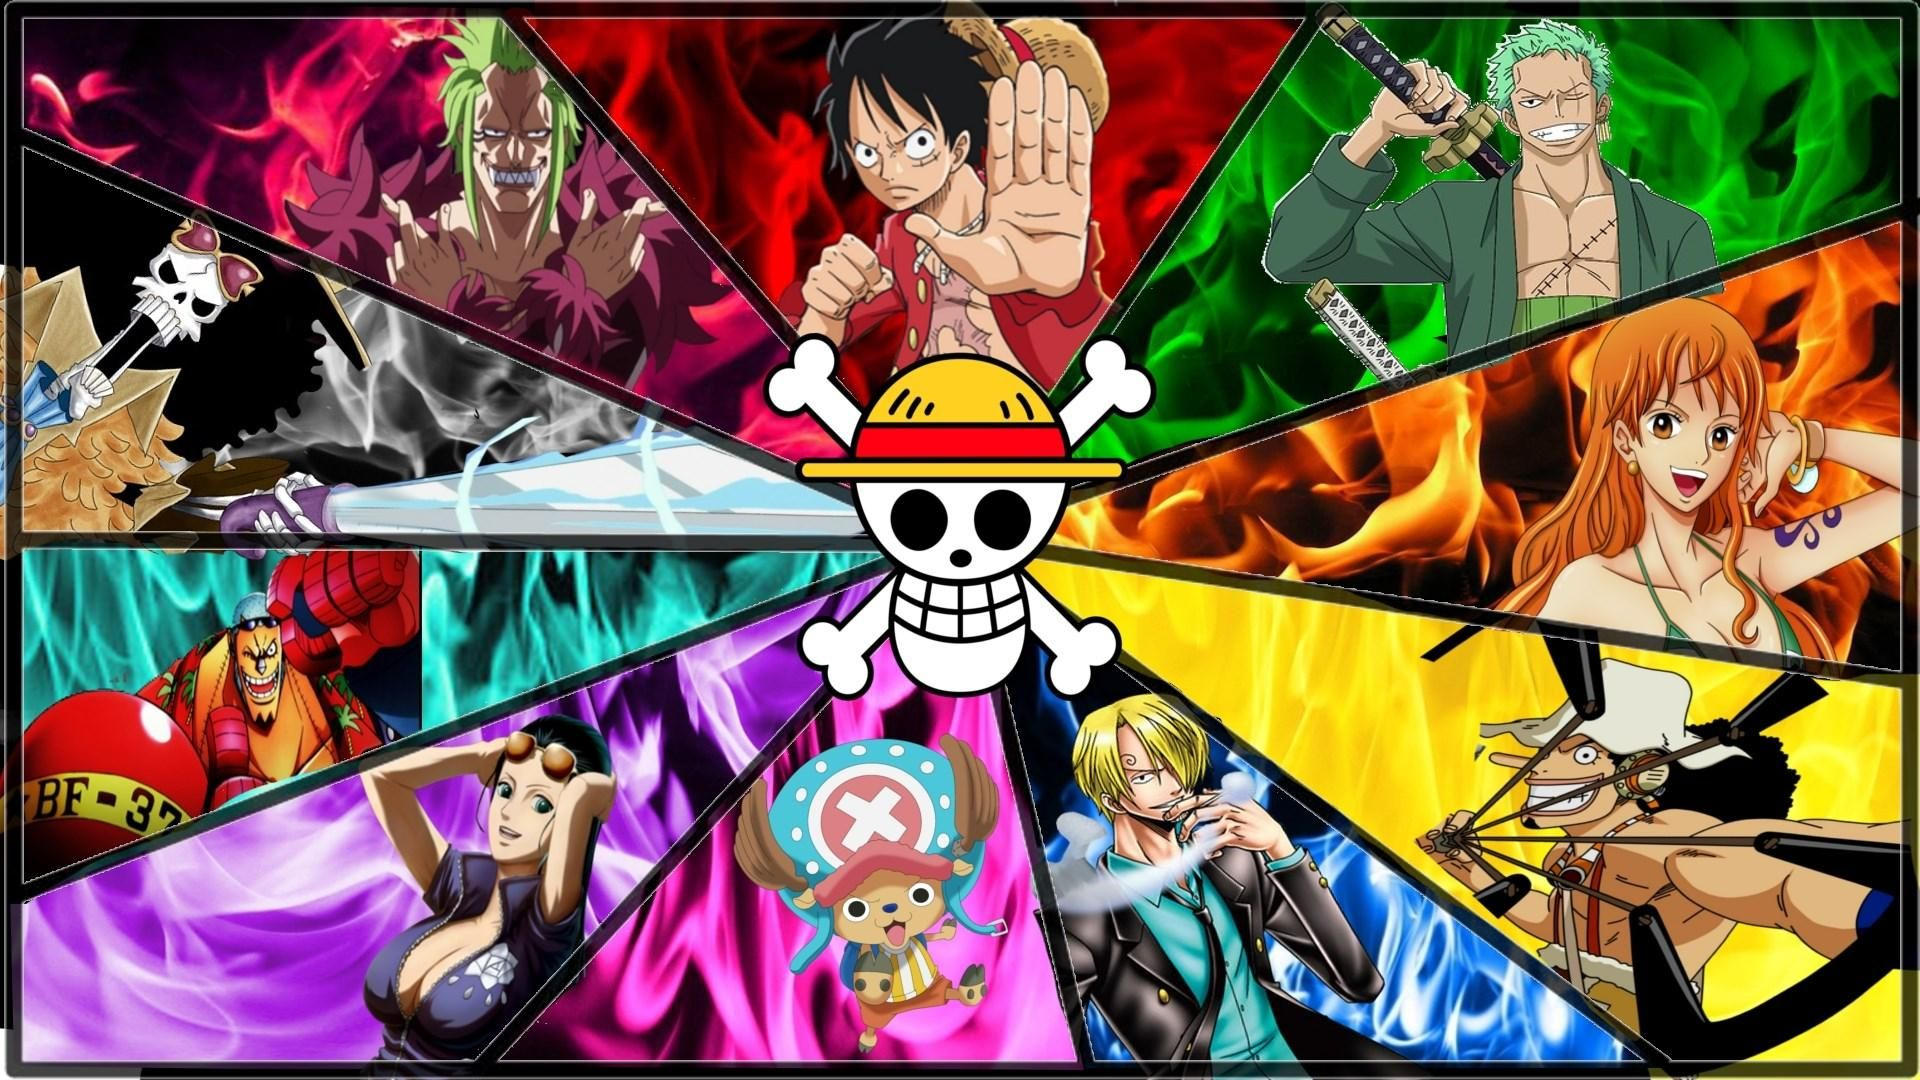 Pictures Anime One Piece Images On Your Desktop